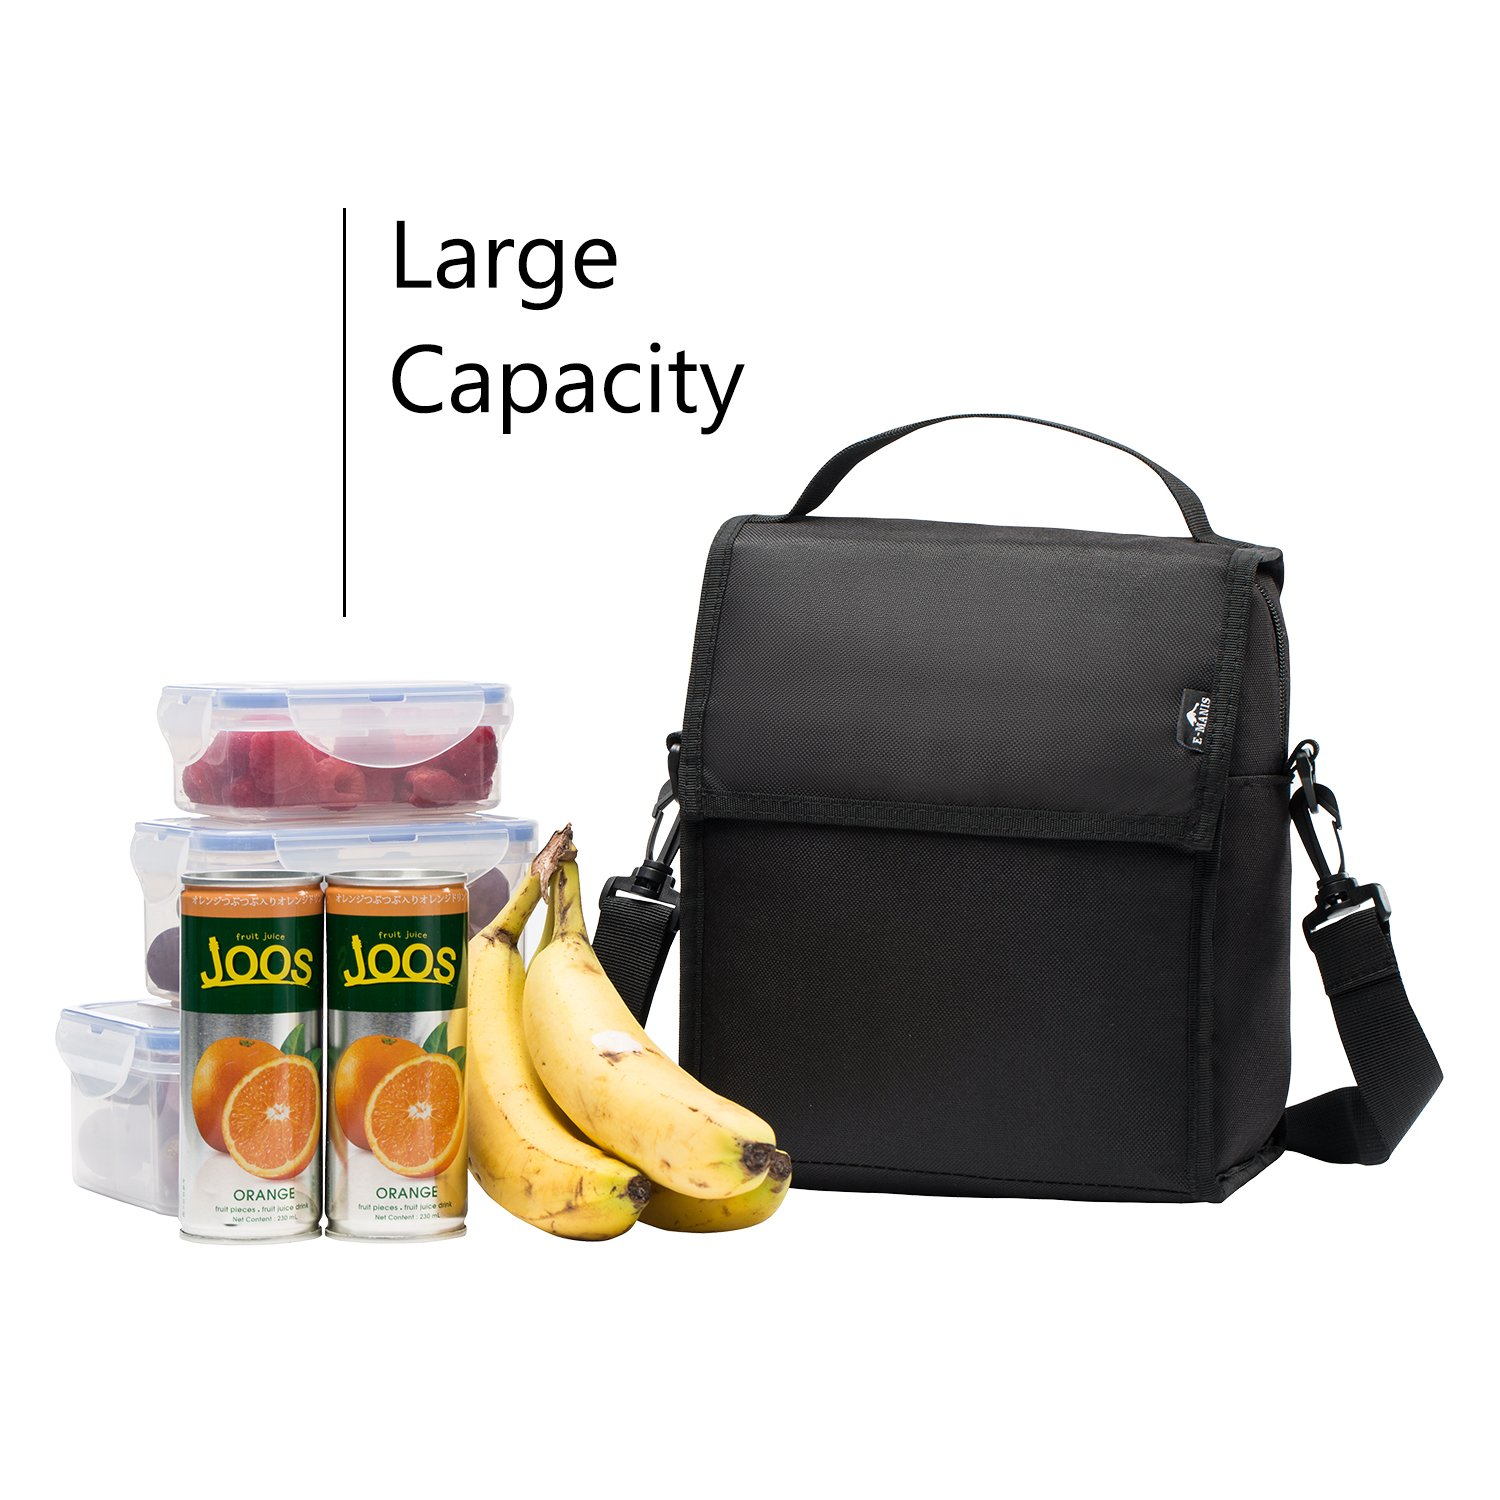 E-MANIS Insulated Lunch Bag Adult lunch box Collapsible Multi-Layers Thermal Insulated Oxford Lunch Tote cooler bag for men women Gray